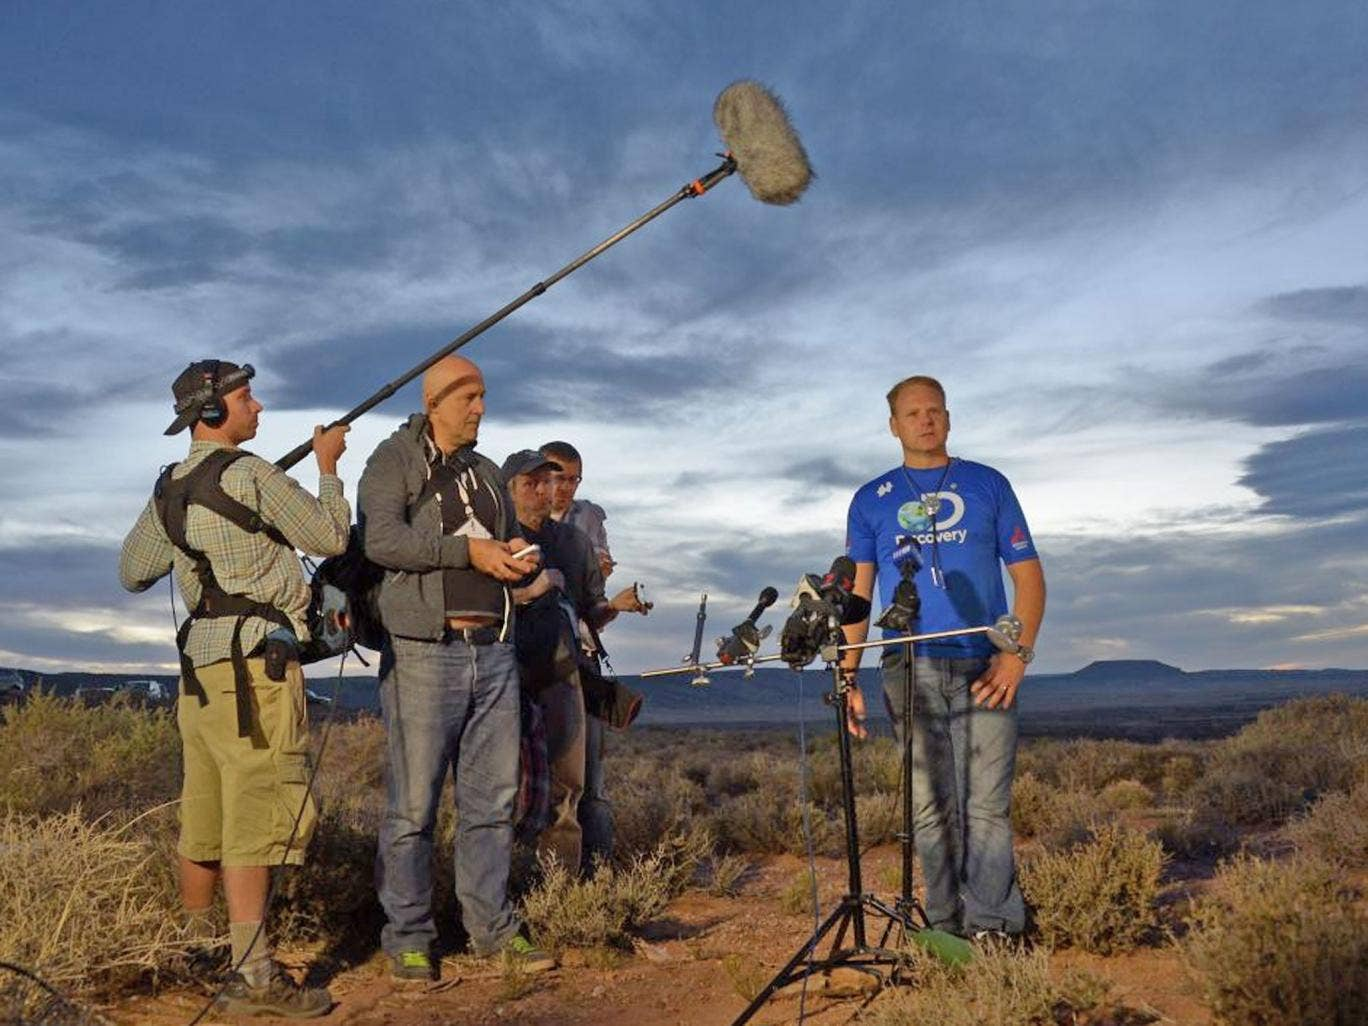 Nik Wallenda speaks after crossing the Grand Canyon on a tightrope live on Discovery